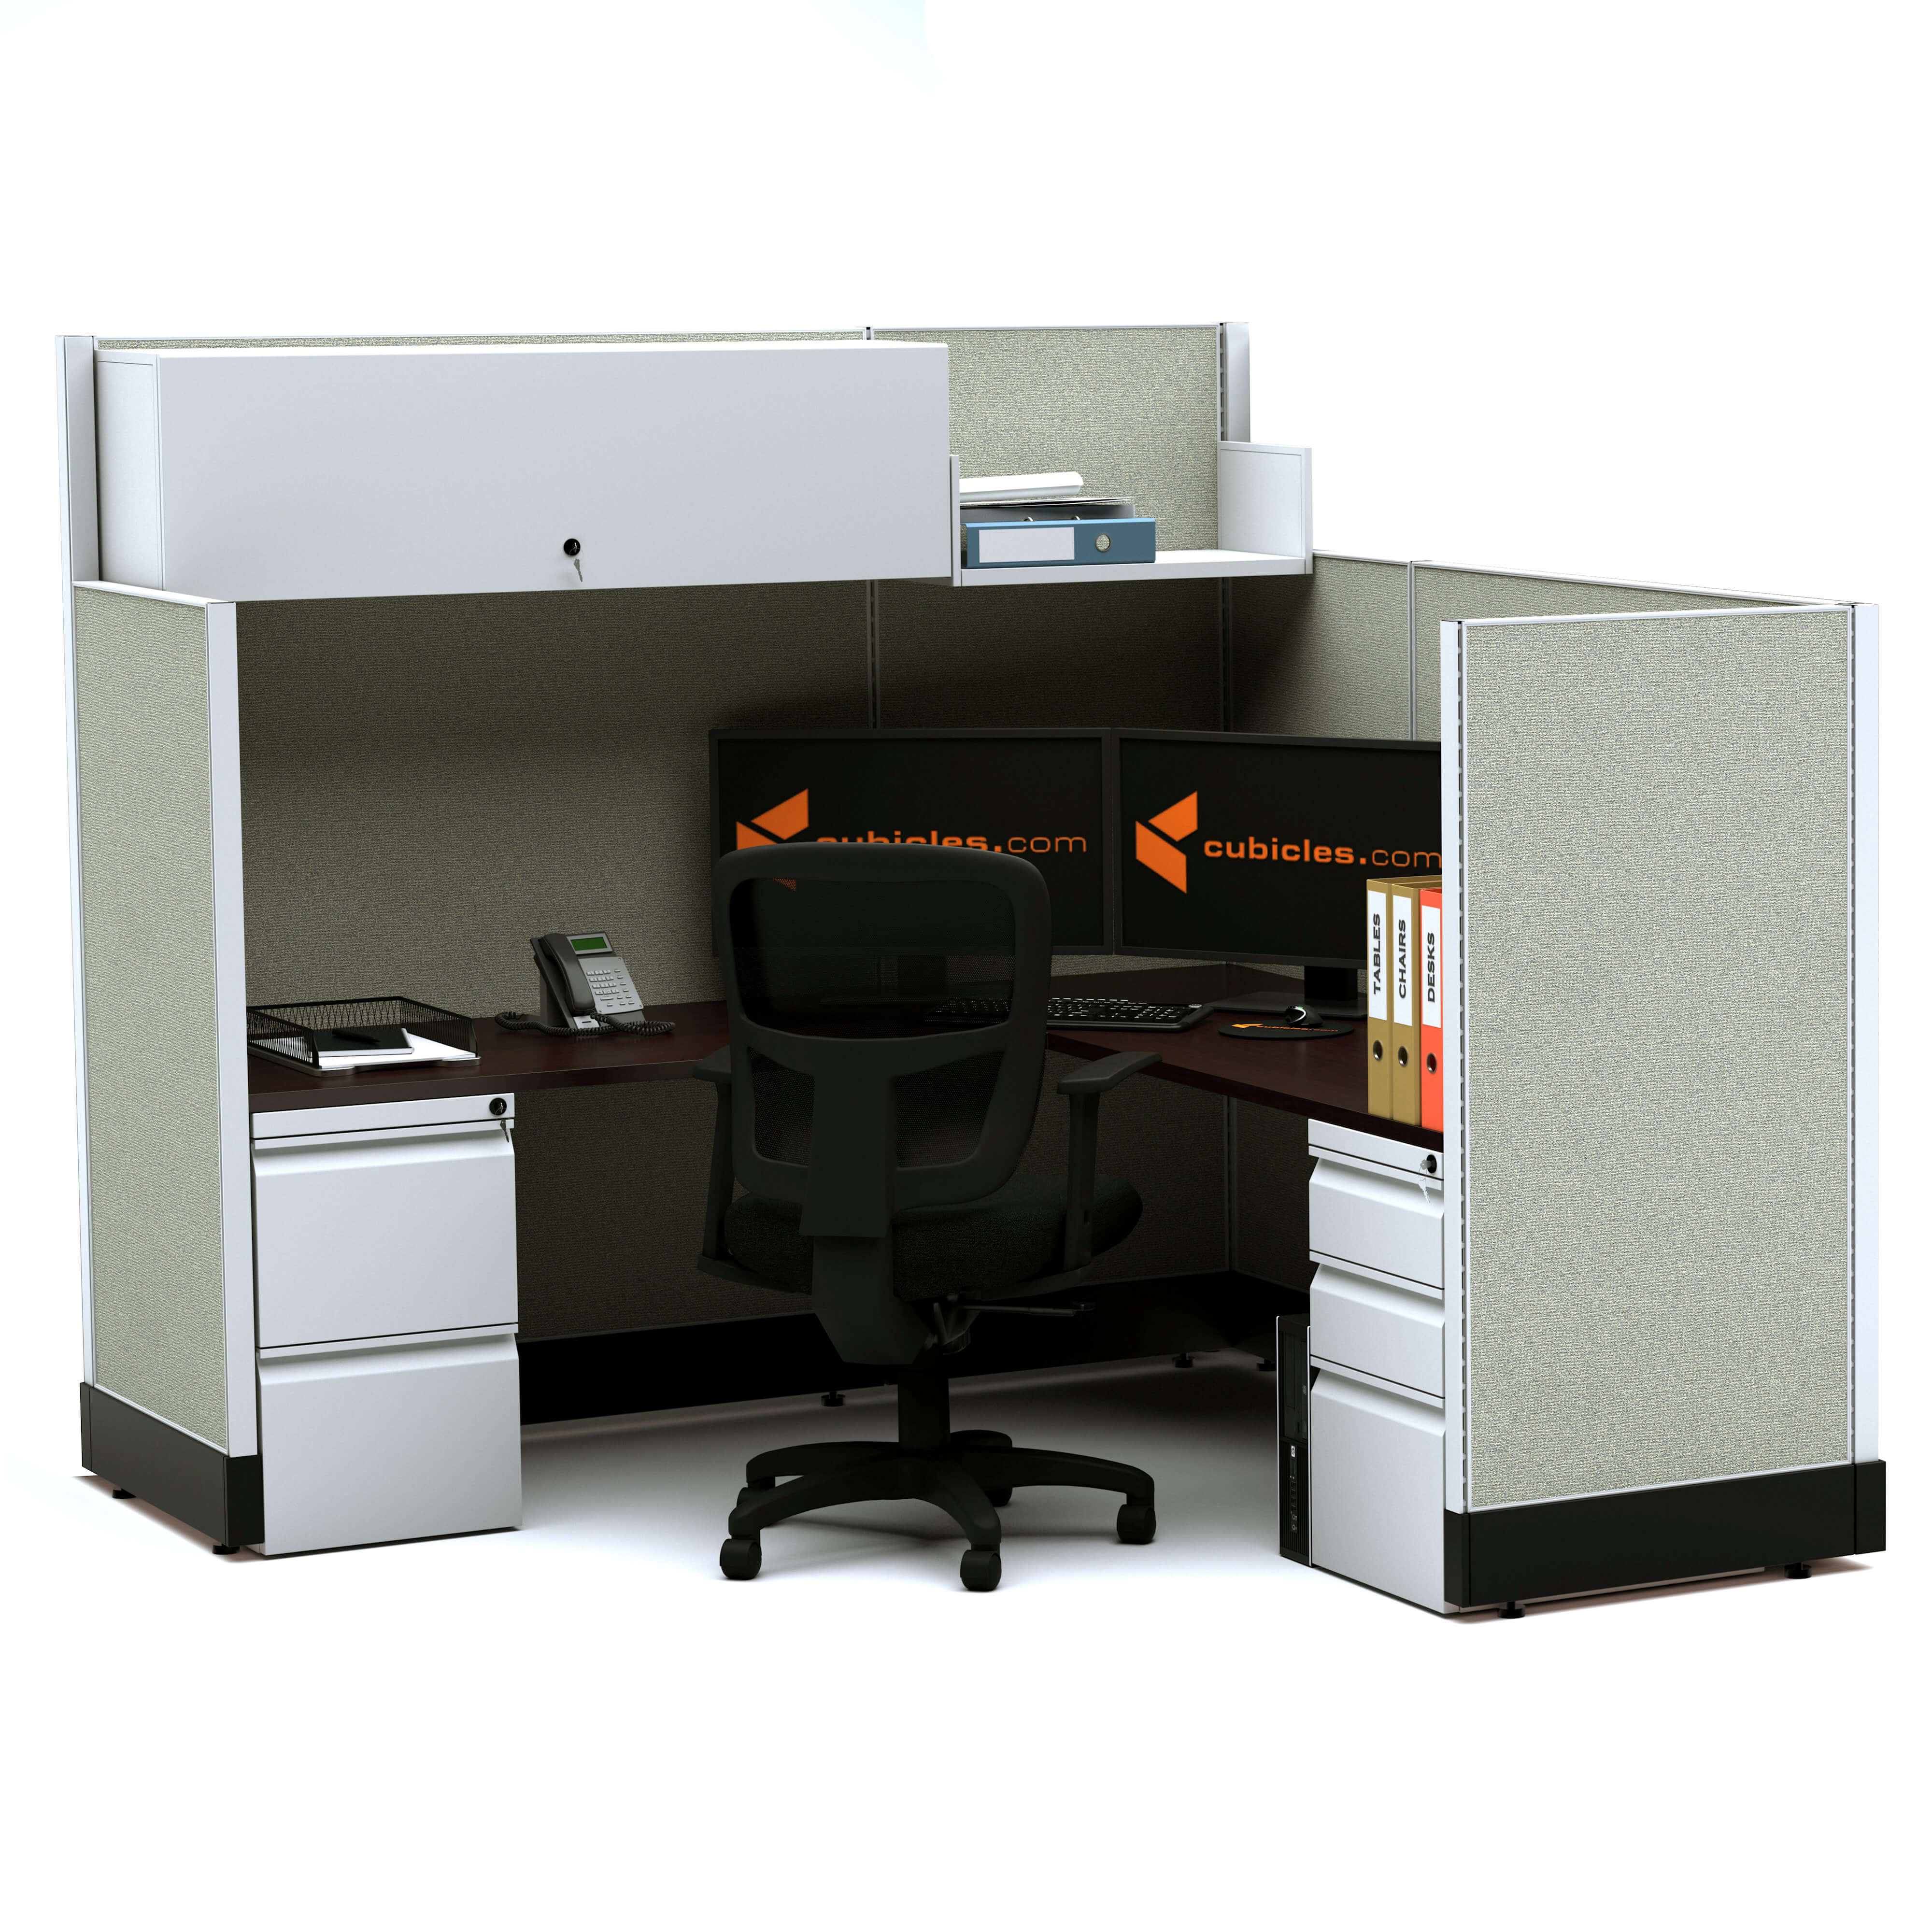 modular-office-furniture-modern-office-furniture-53-67-powered.jpg